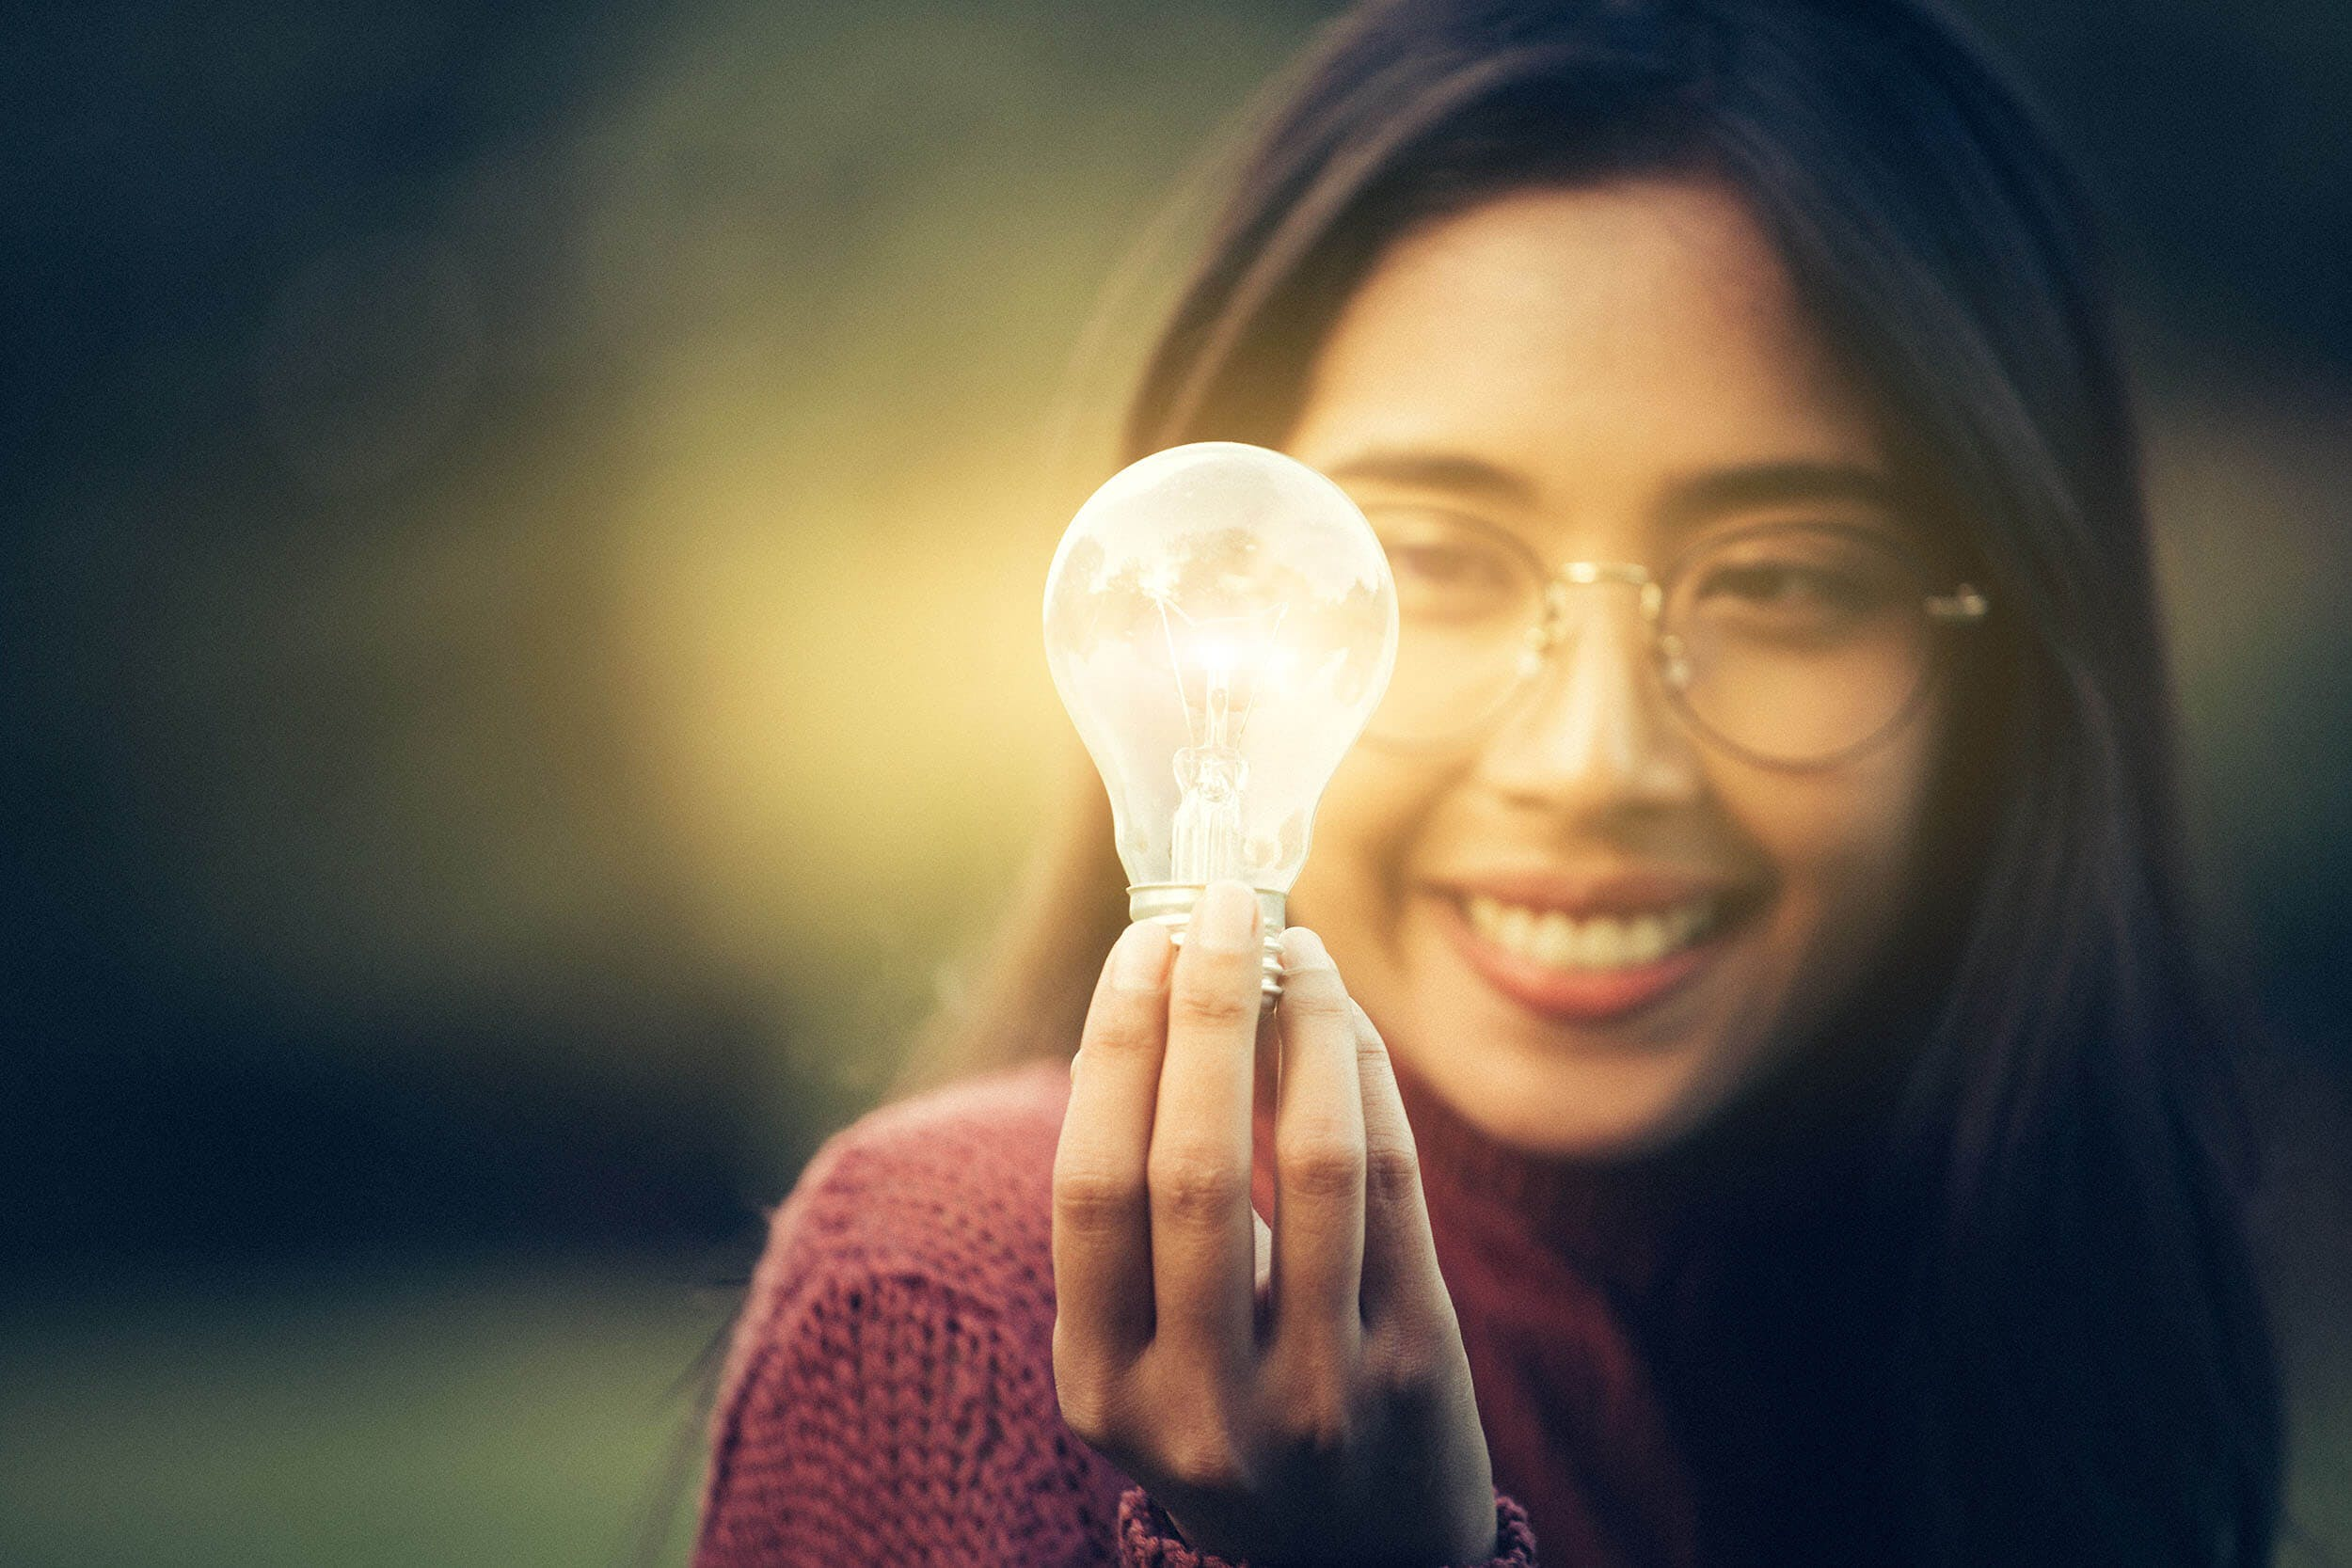 Woman cheerfully holds a lit light bulb